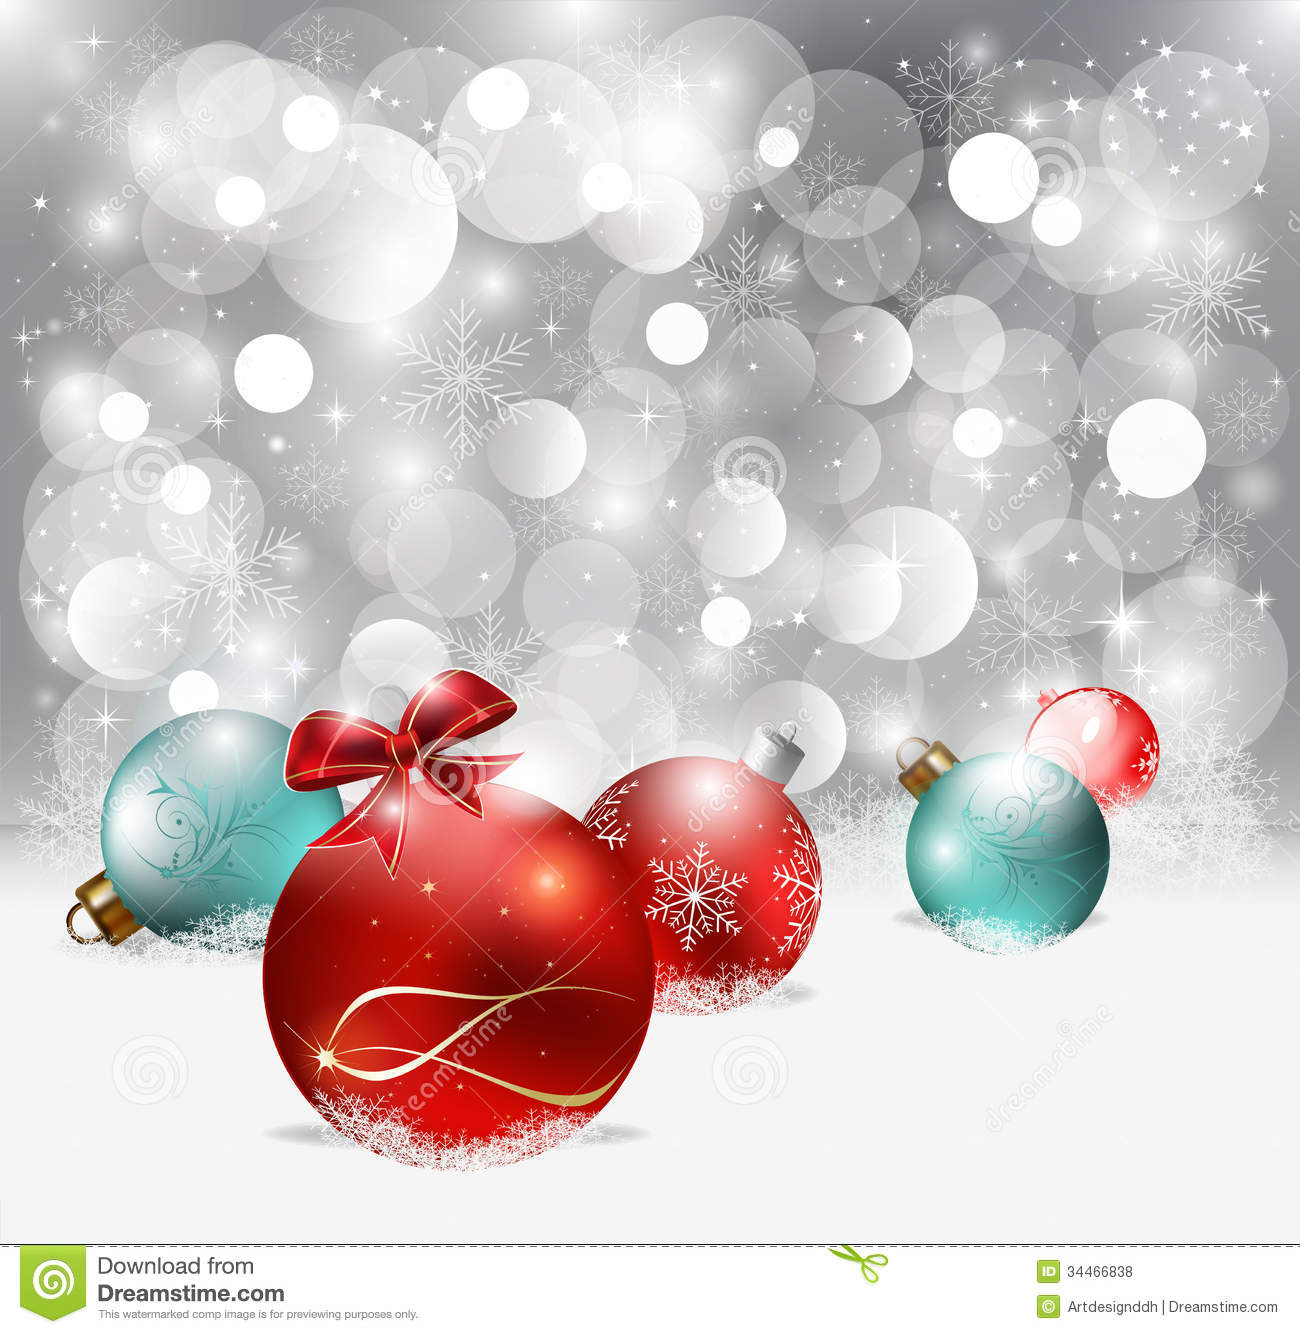 Background clipart holiday.  collection of free